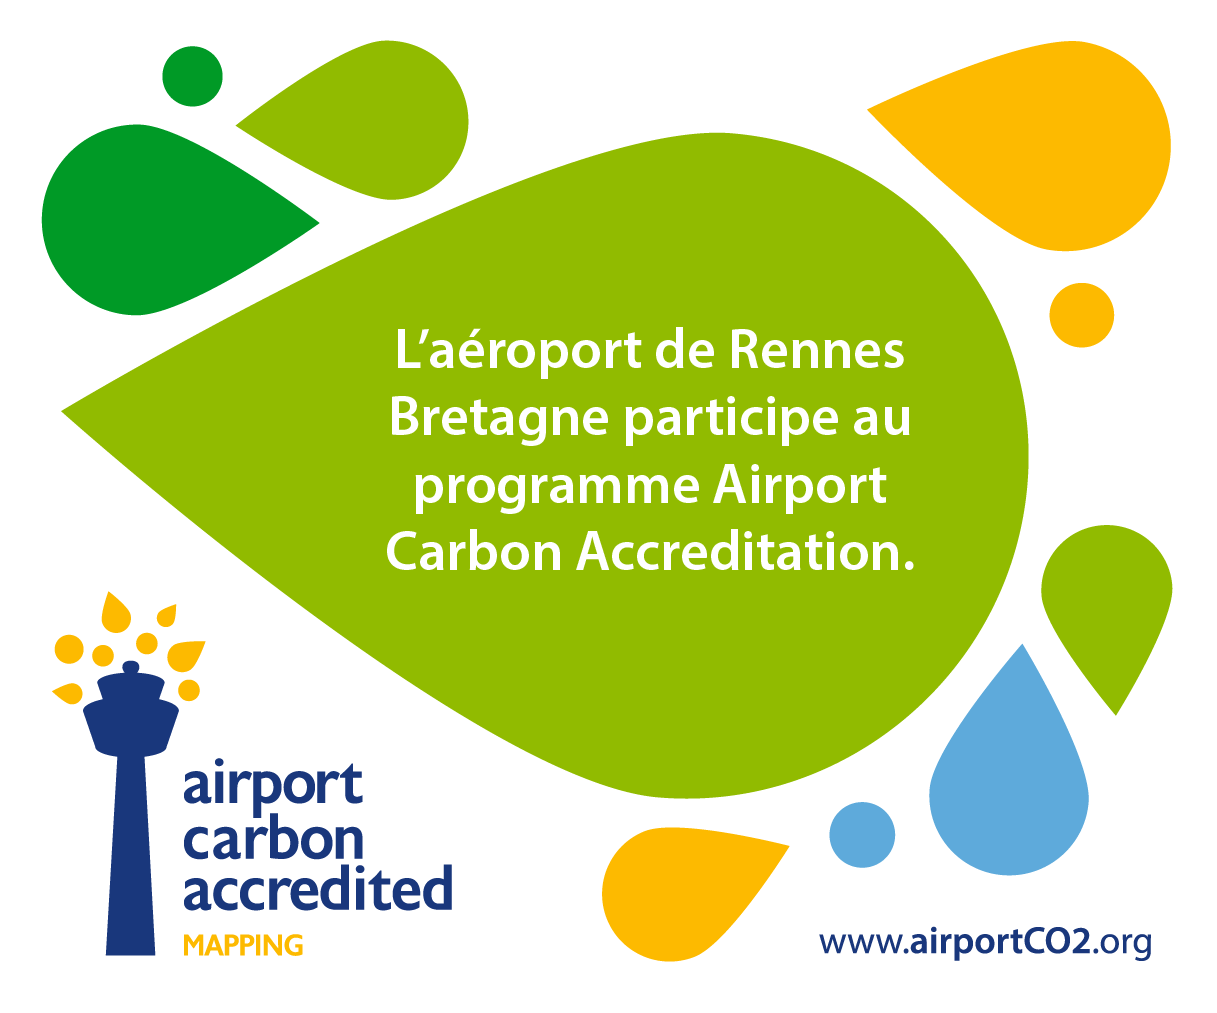 aca-airport-carbon-accreditation-aeroport-rennes